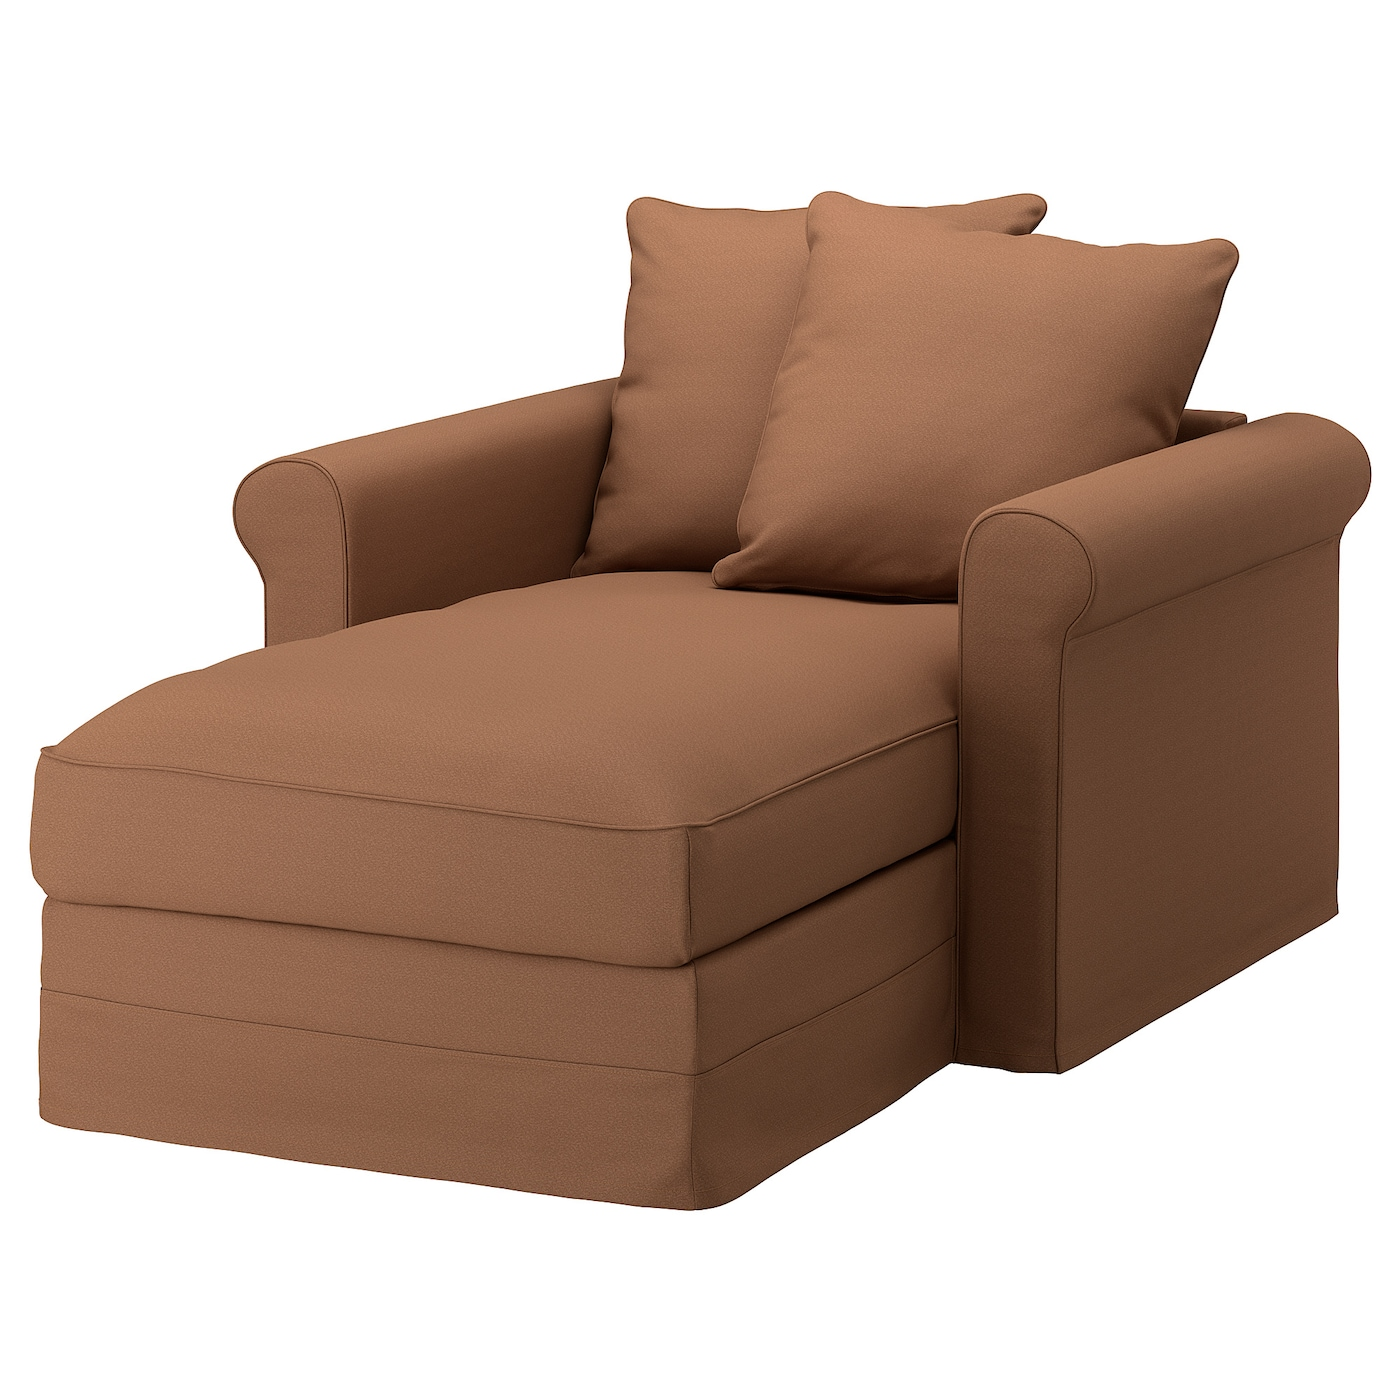 nlid inseros en chaise guarantee light year gr in the longue about sofas gb products longues ikea read armchairs brown brochure spr terms lounge